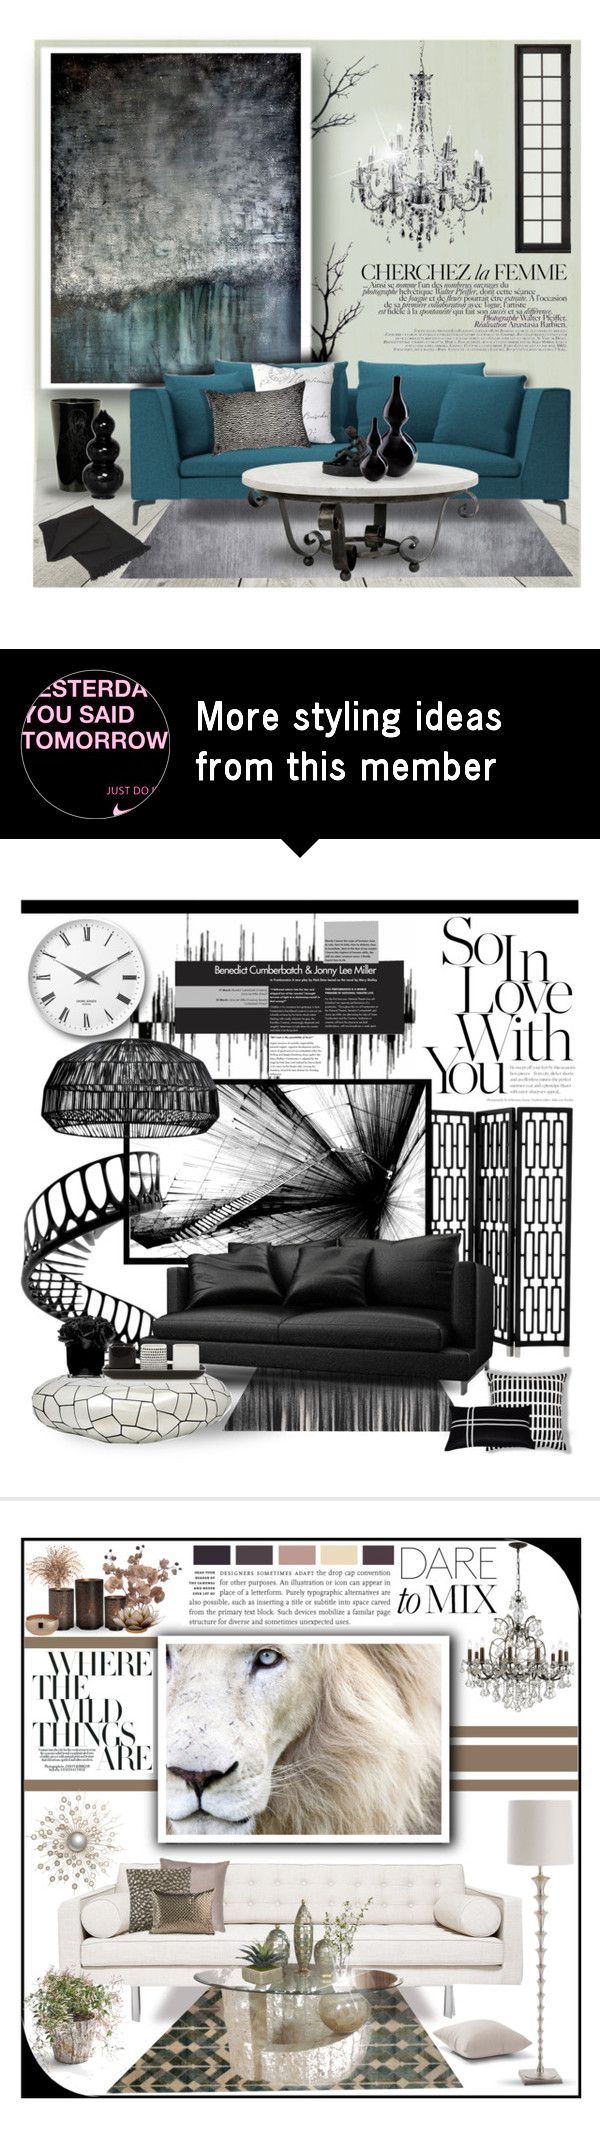 Painted By Sassyfashionista 101 On Polyvore Featuring Interior Interiors Design